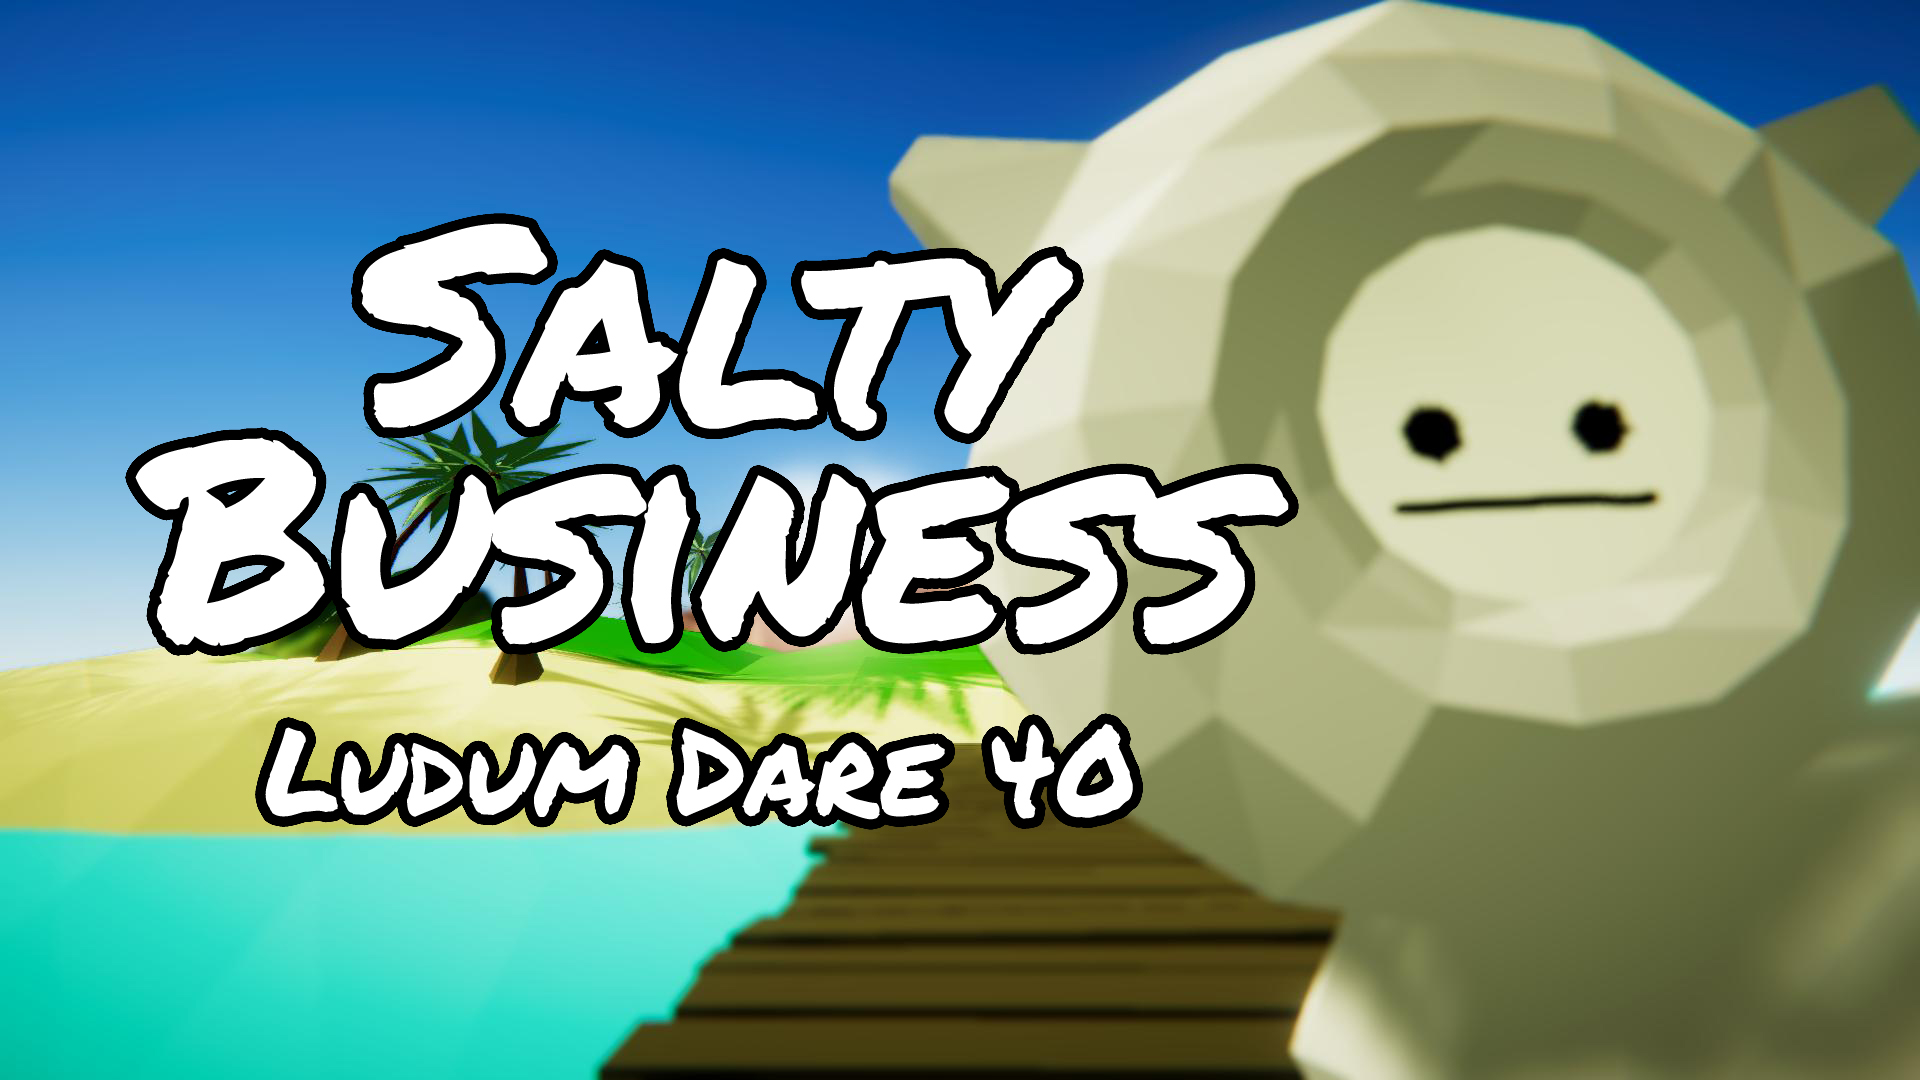 Salty Business